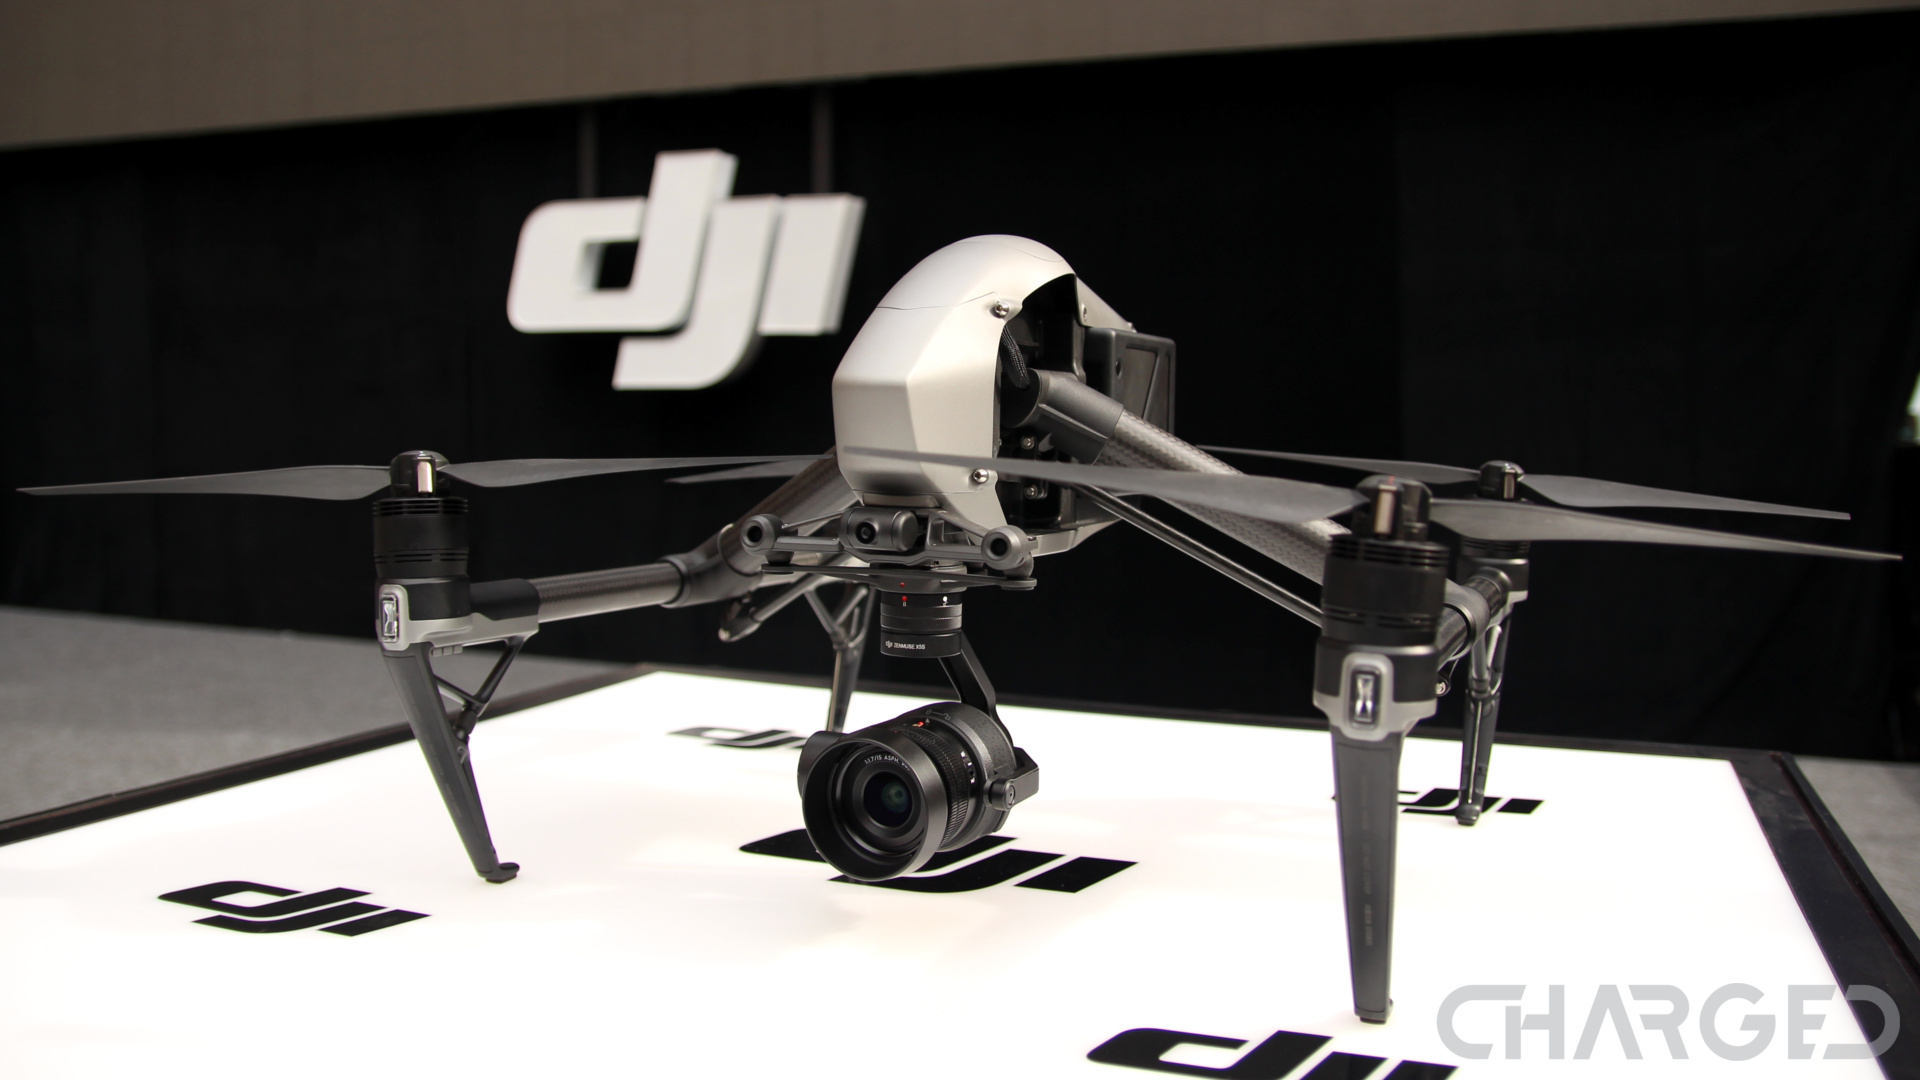 drone goggles with Dji Inspire 2 Feature Film The Circle 2775 on Dji Mavic Pro Drone Accessories Bundle Black 10162304 Pdt as well Gta V Jump Vr Bandwagon additionally Dji Inspire 2 Feature Film The Circle 2775 furthermore Eachine Wizard X220 Fpv Racing Drone Flysky I6 Set as well Military jokes 20091123234038.